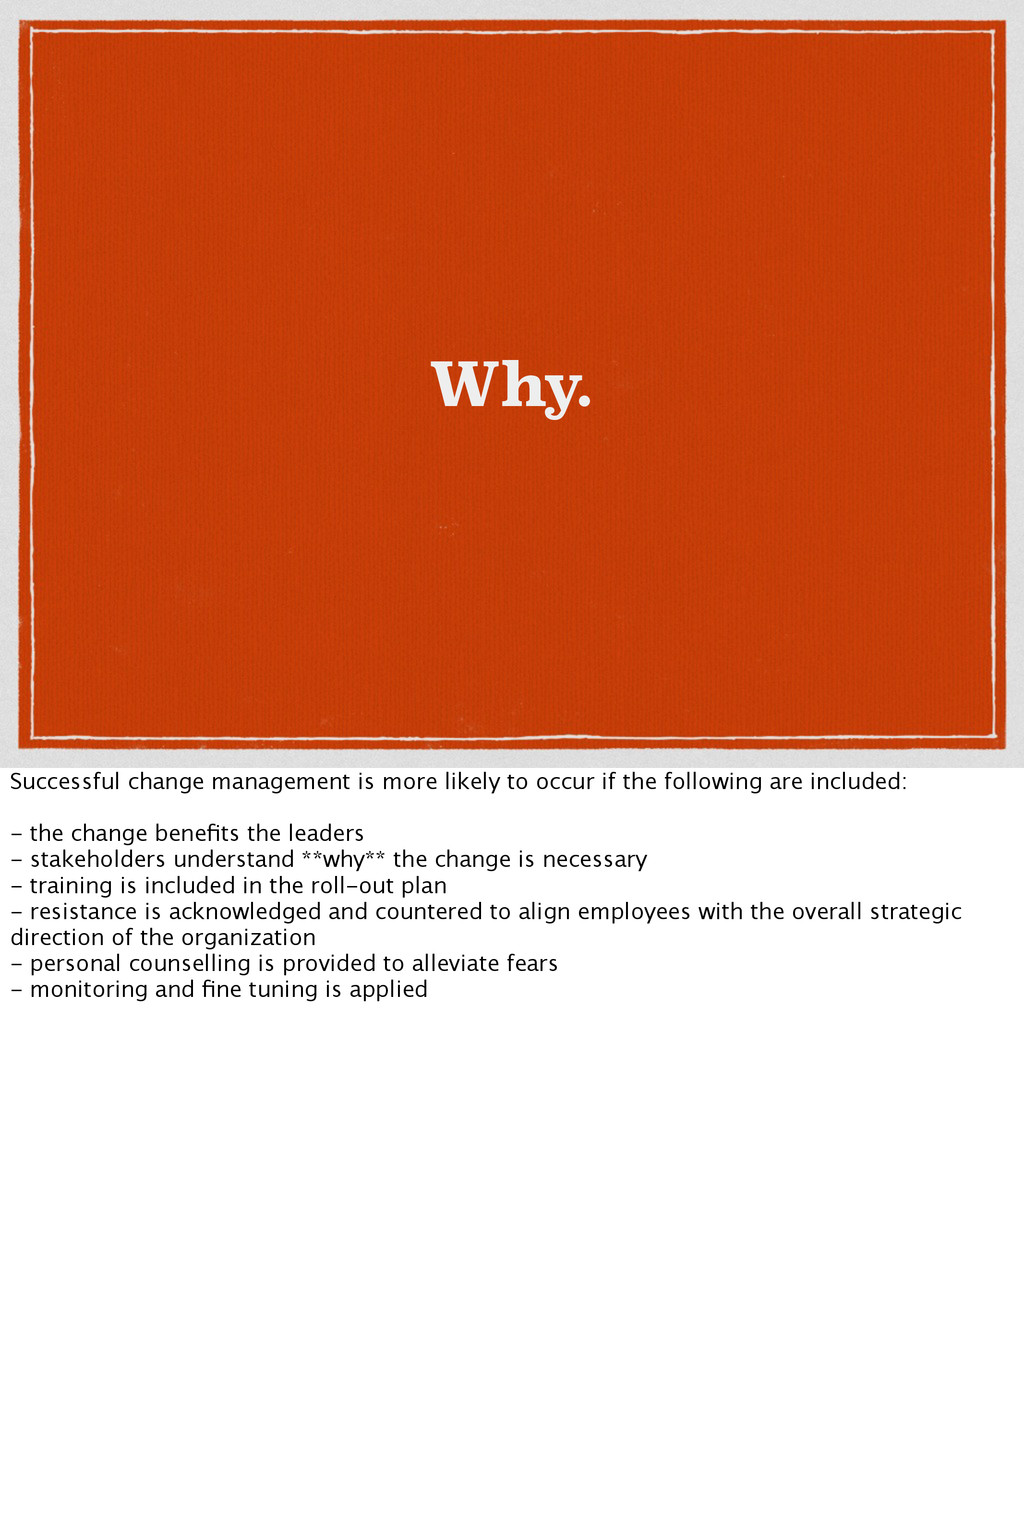 Why. Successful change management is more likel...